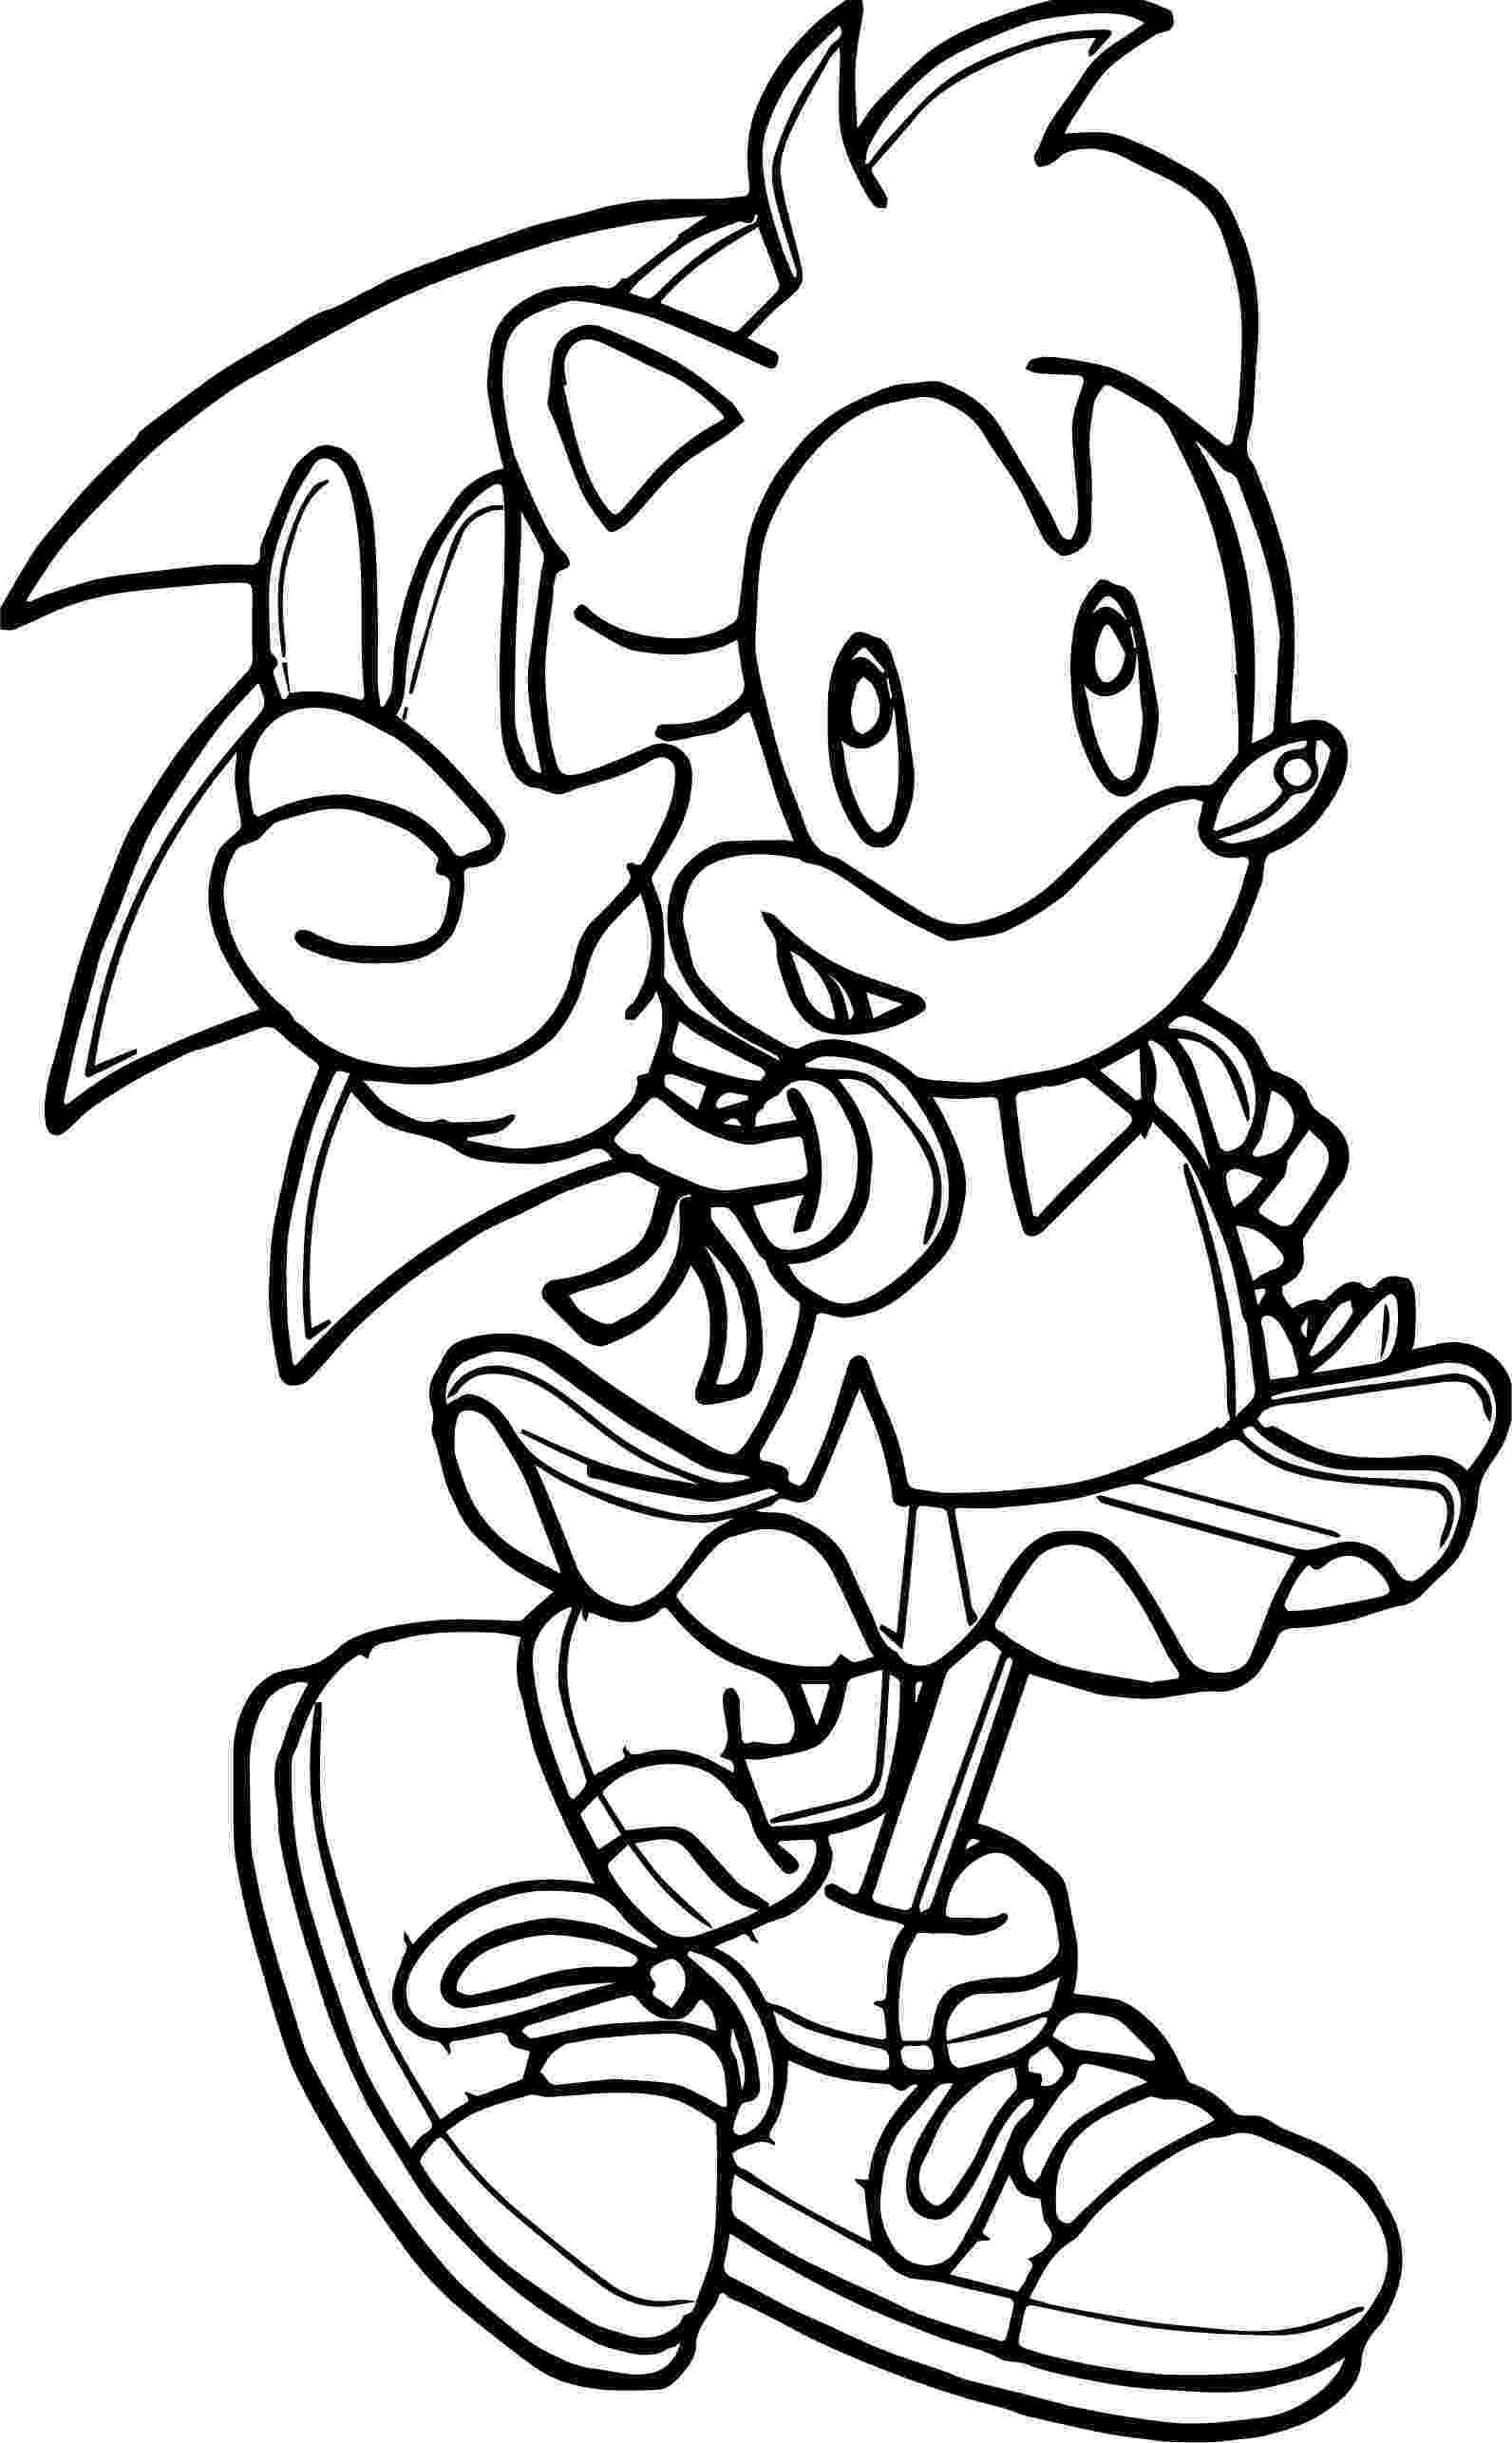 amy rose coloring pages new style amy rose coloring page wecoloringpagecom rose amy coloring pages